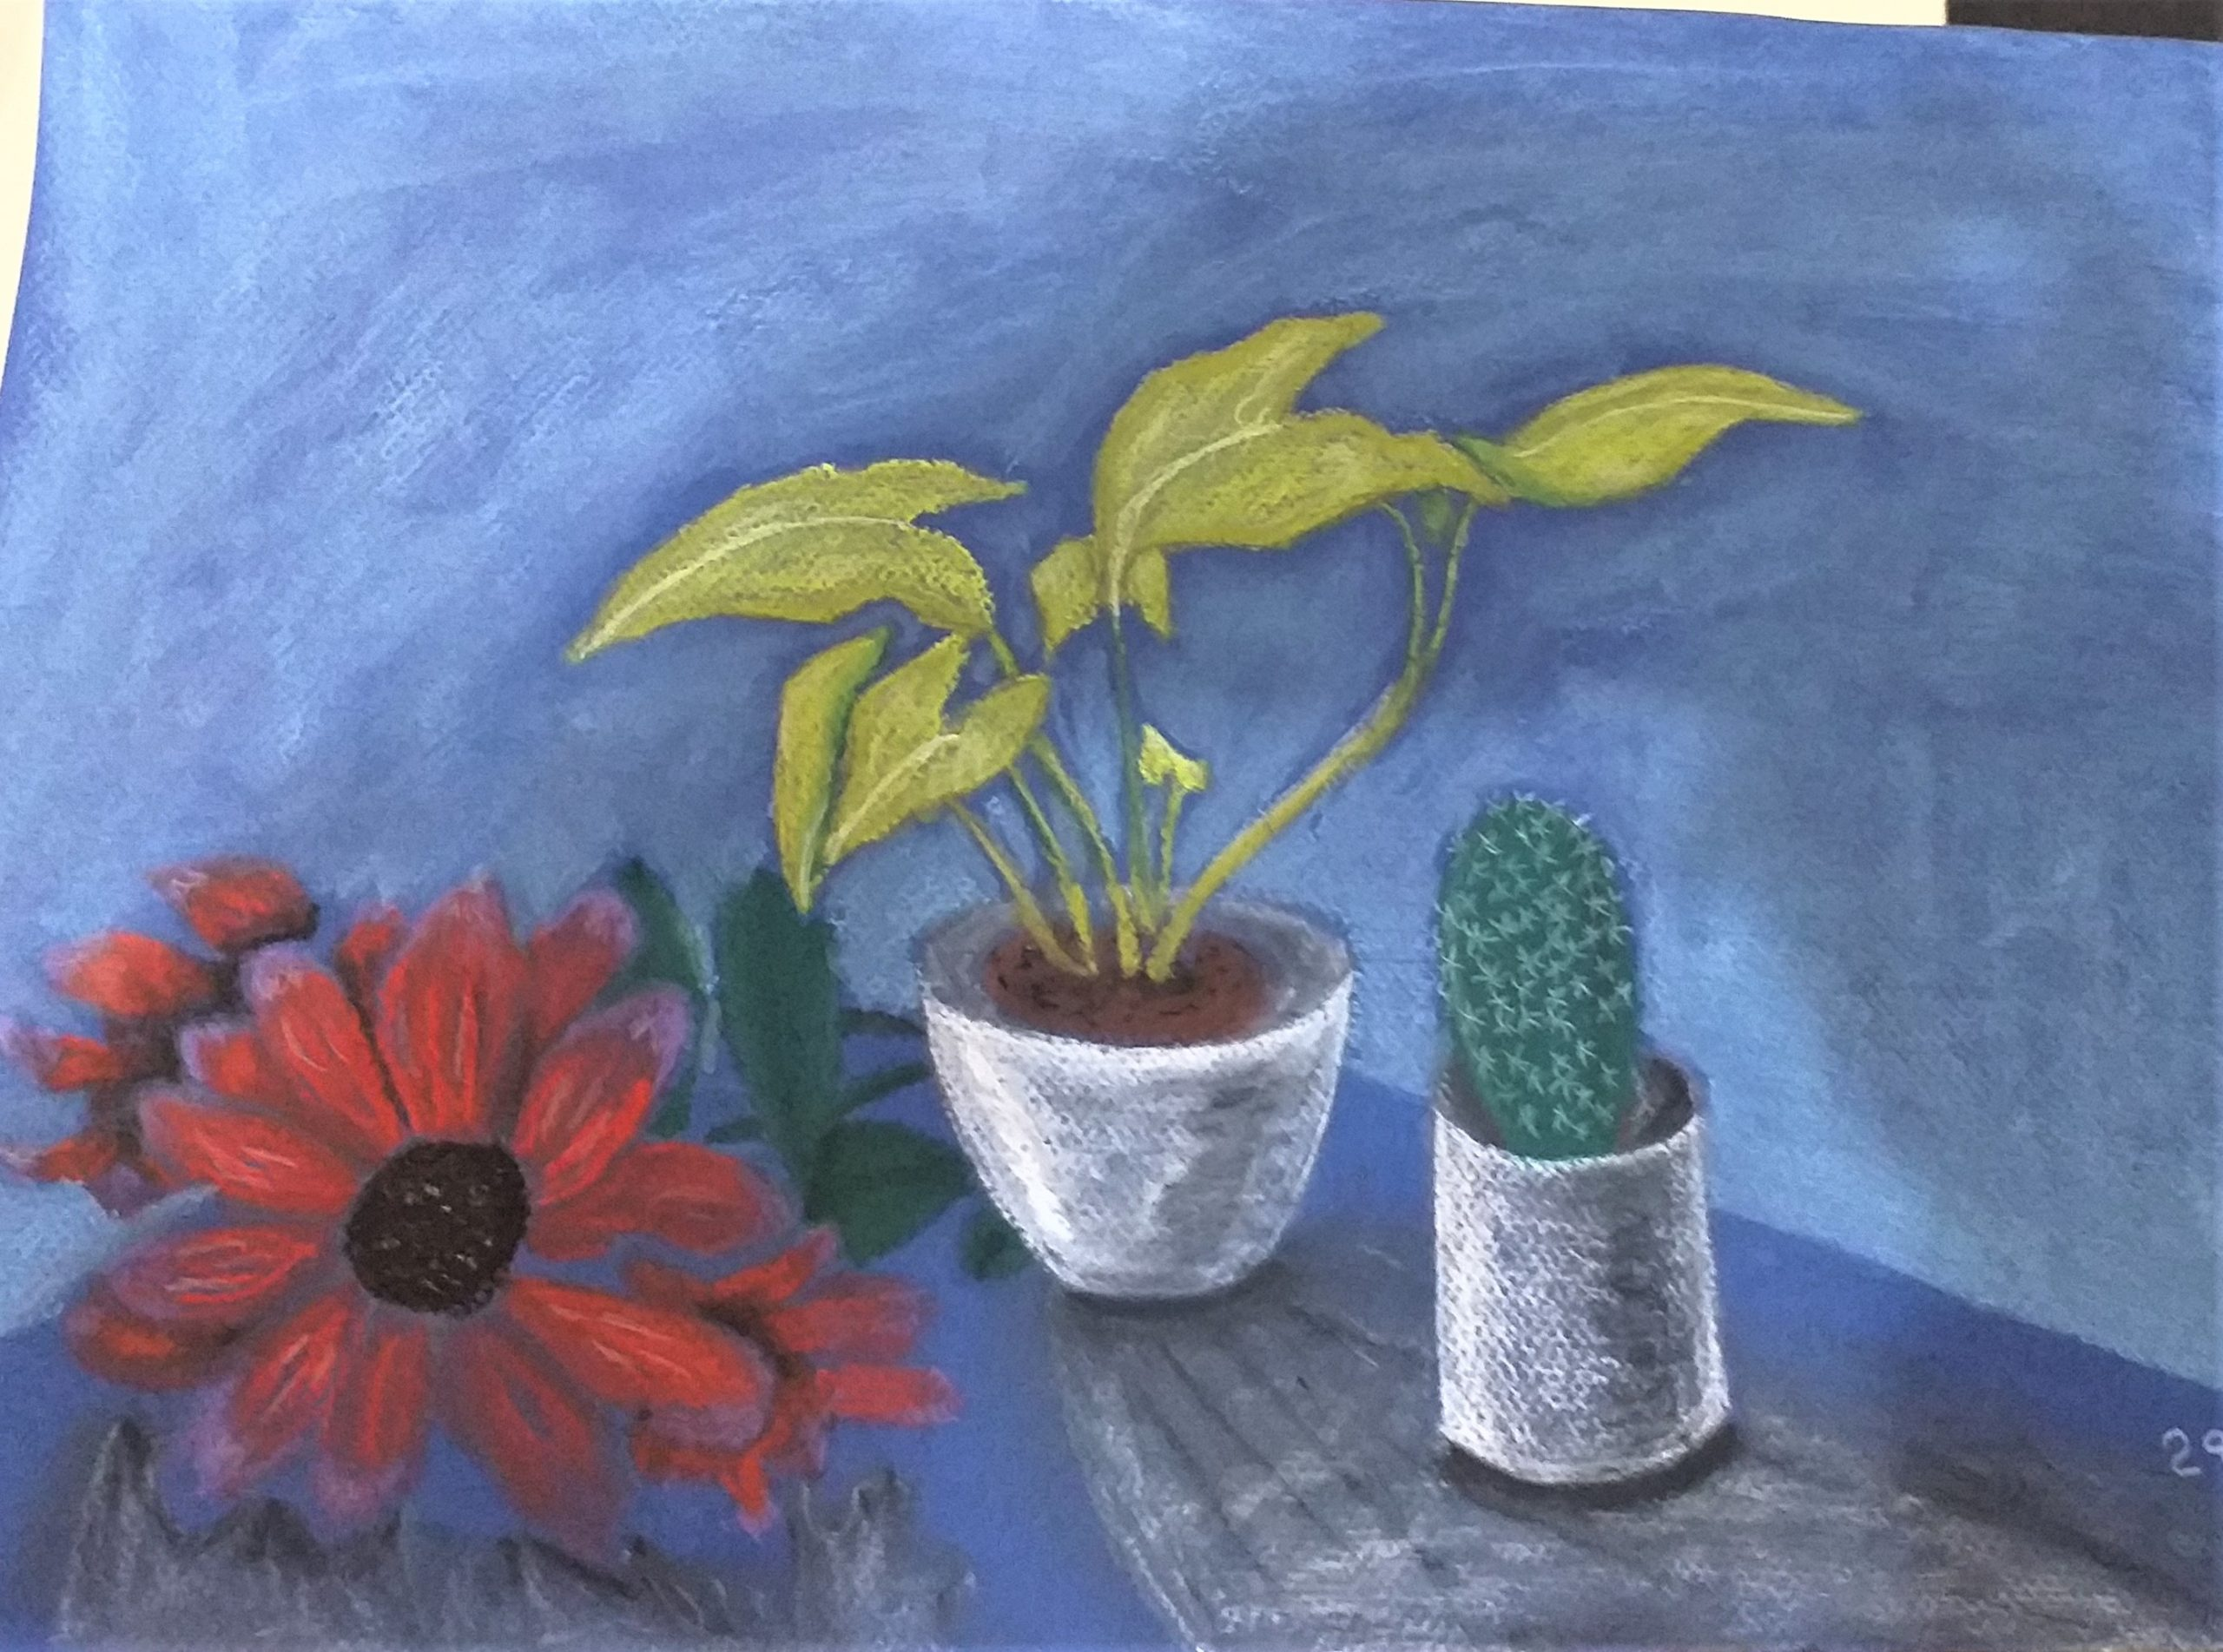 Luke's pastel drawing of still life created at art course in Kidderminster Worcestershire